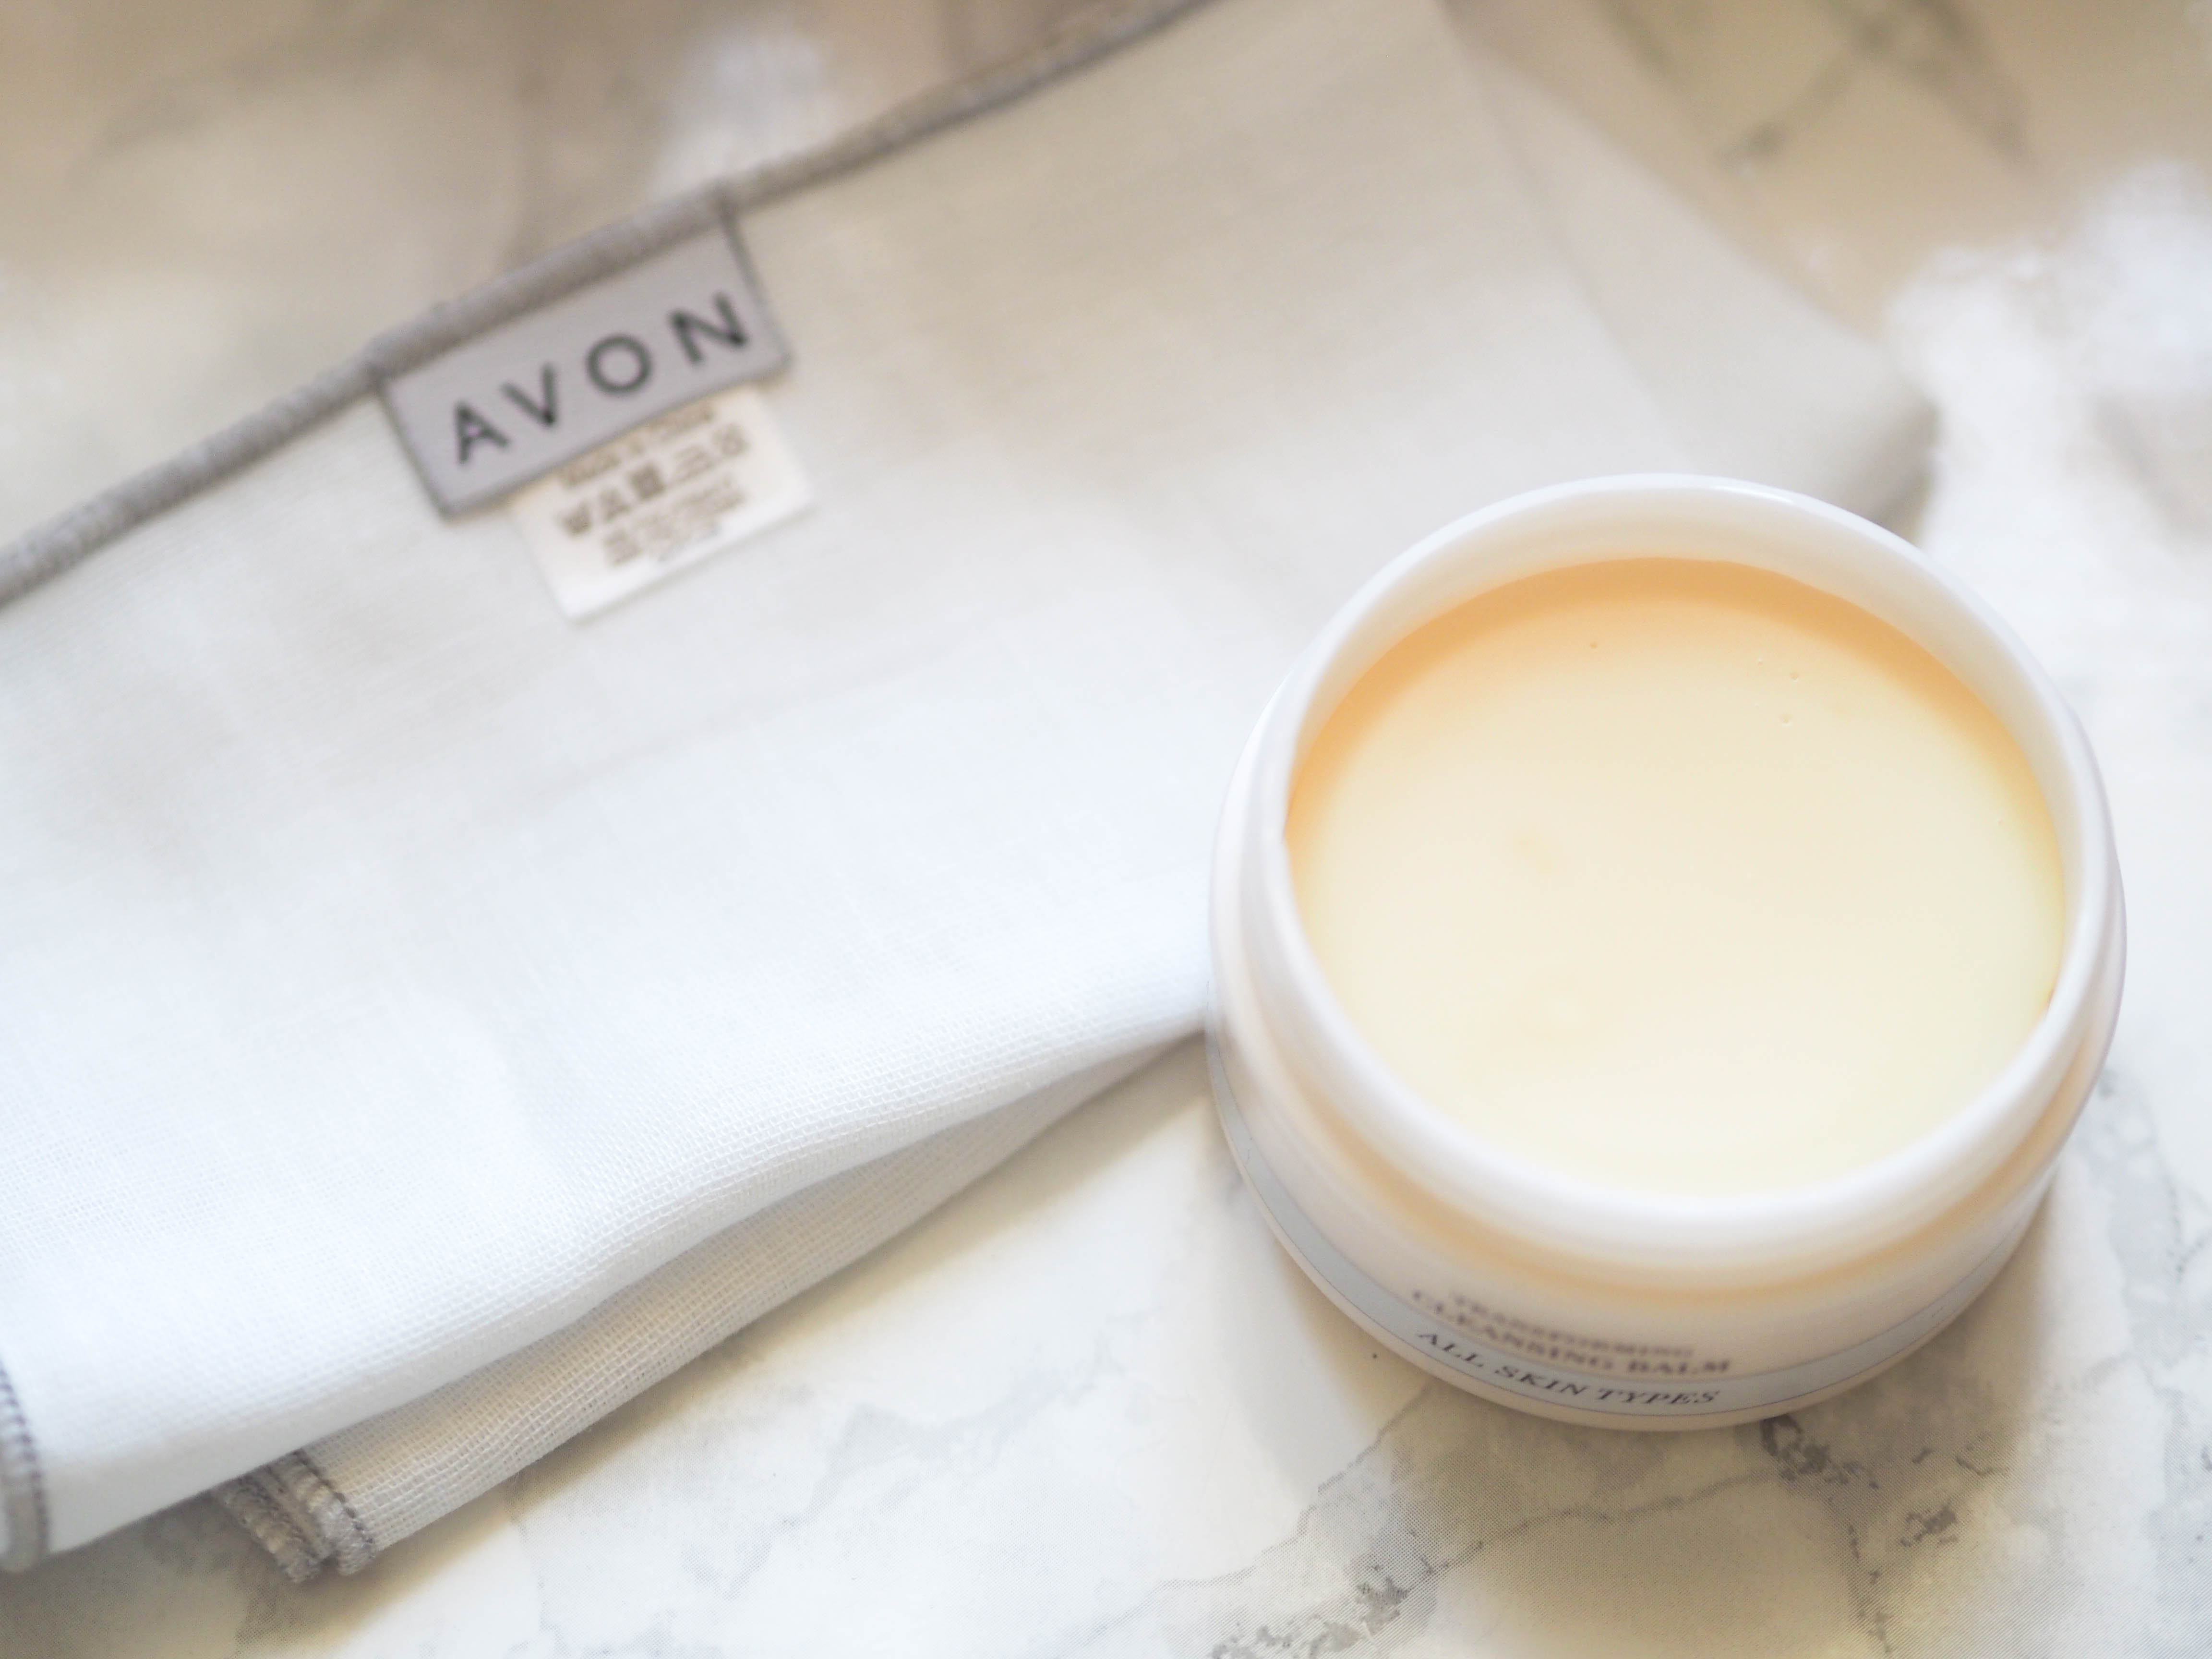 Avon Anew Clean Transforming Cleansing Balm Review